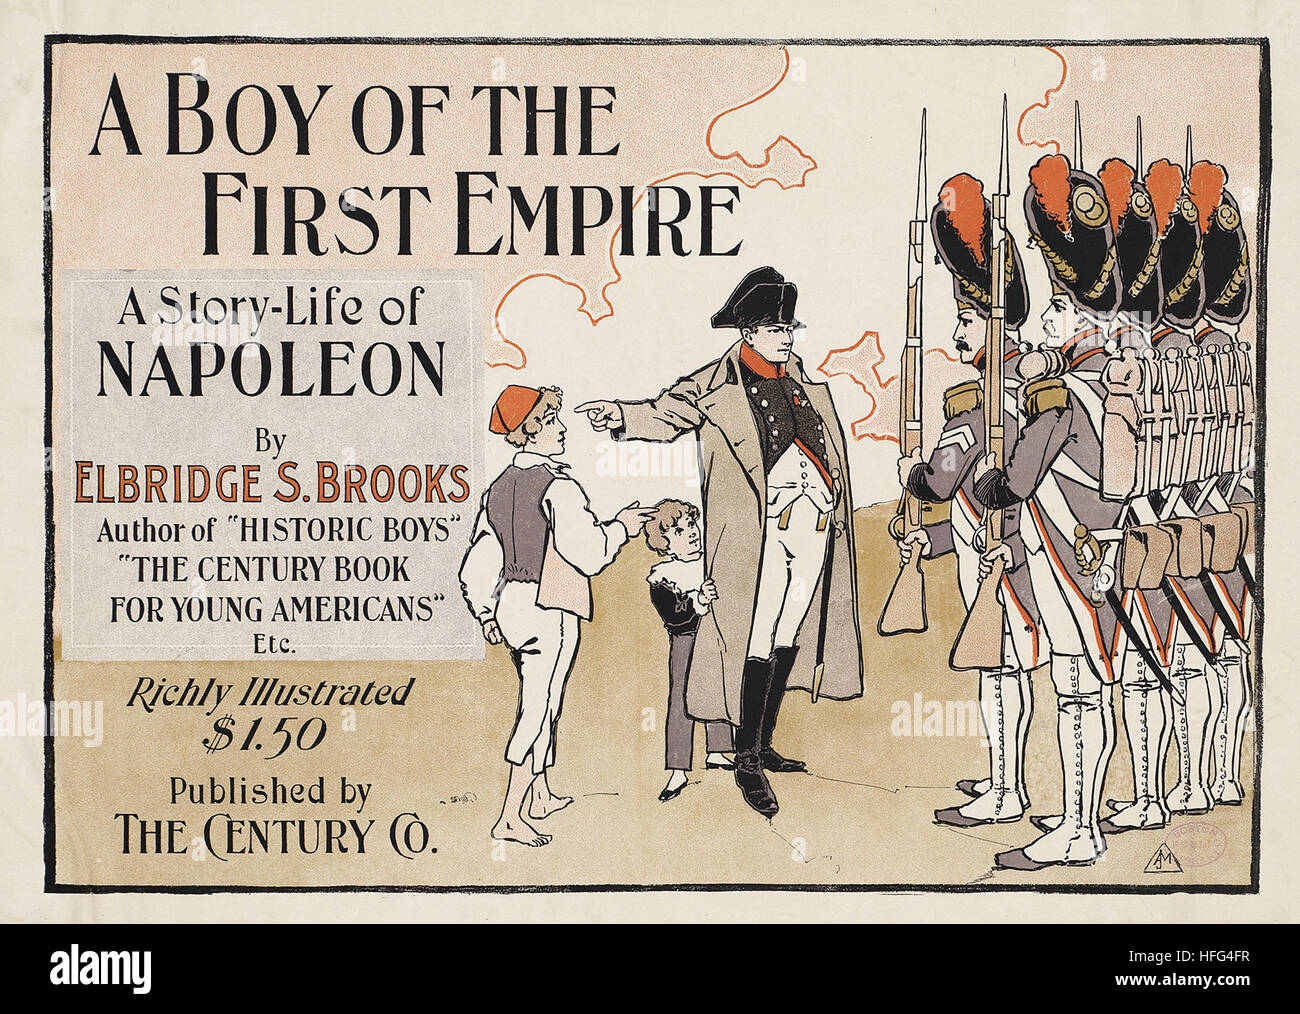 A boy of the First Empire, a story-life of Napoleon - Stock Image